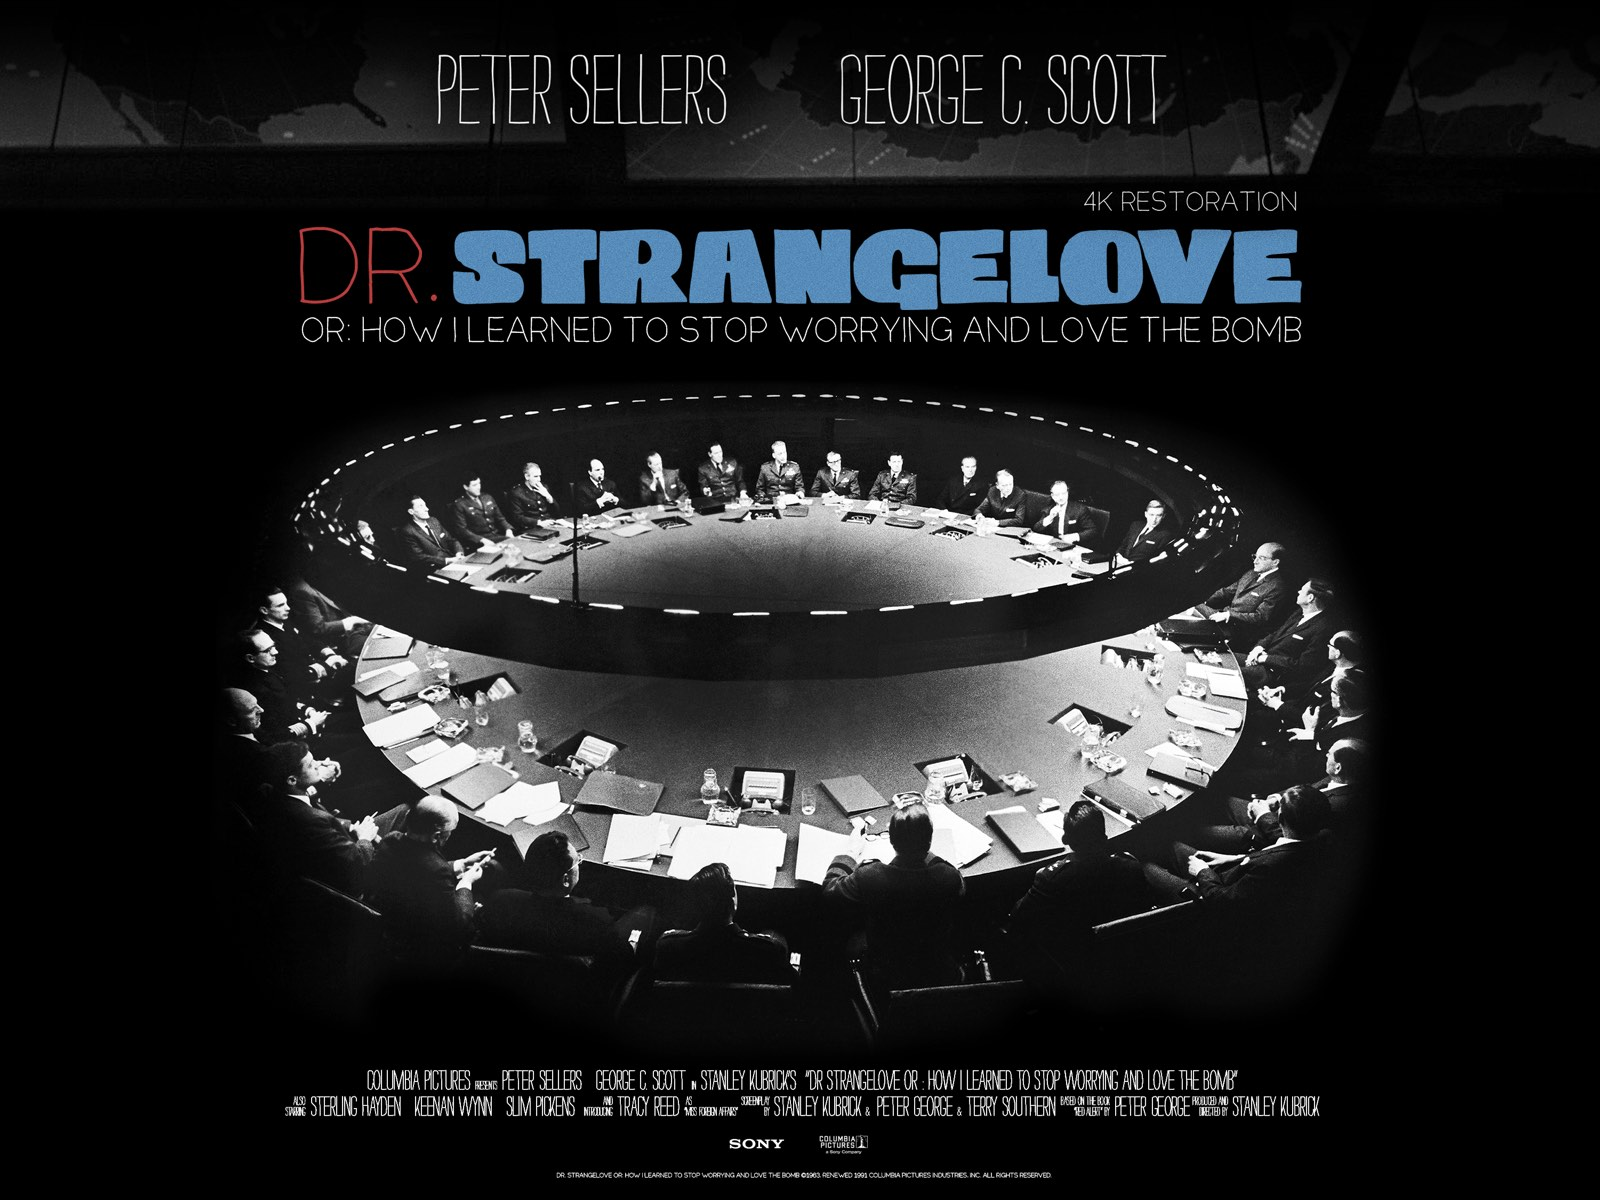 Dr. Strangelove returns with exclusive new short film